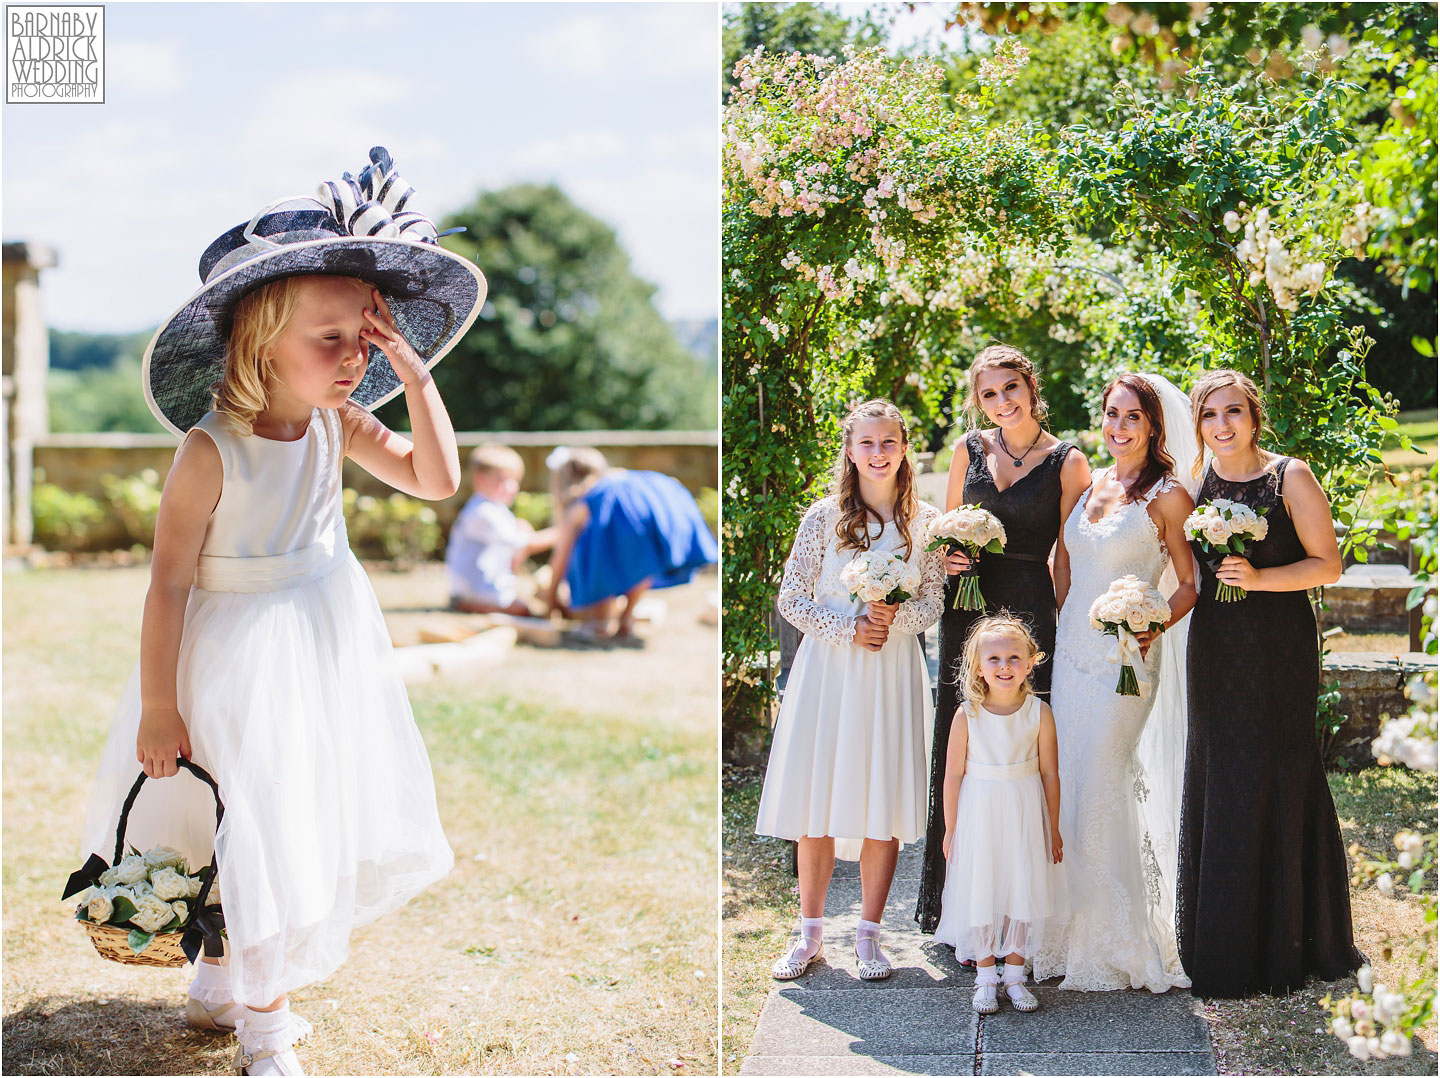 A funny flower girl and bridal party wedding photo at Wood Hall in Yorkshire